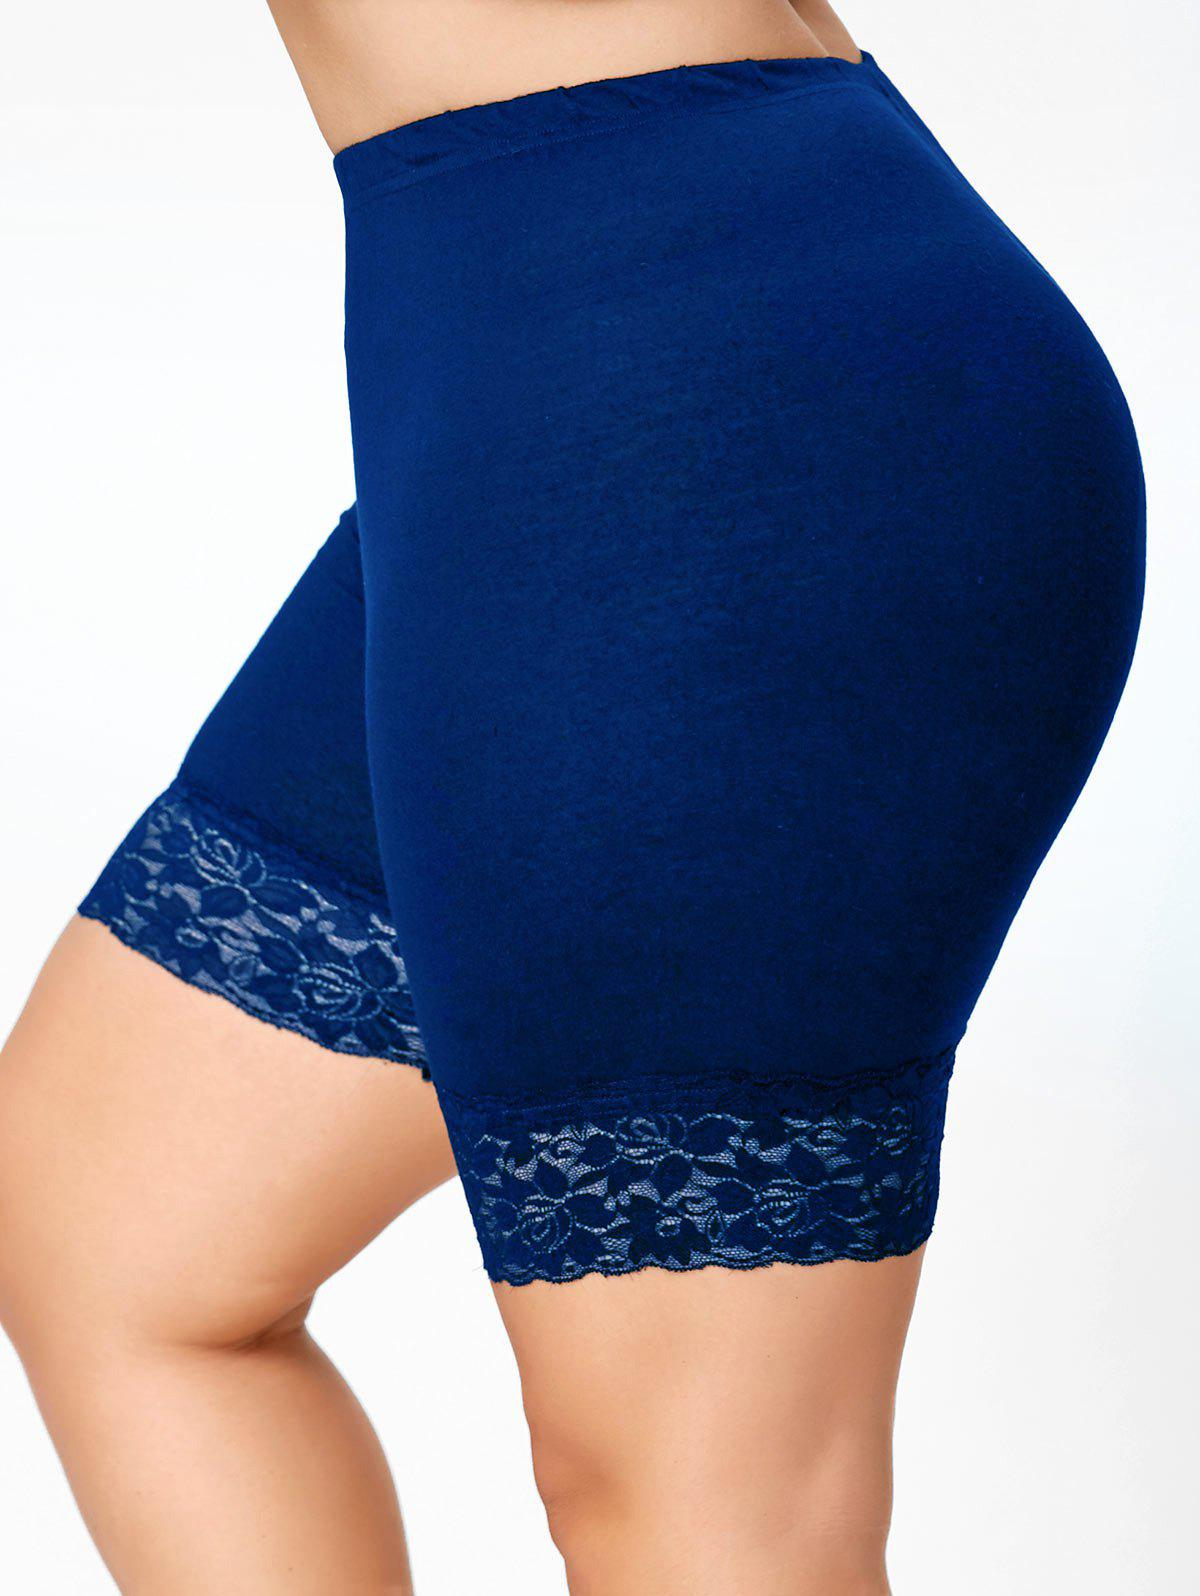 Lace Trim Plus Size Short LeggingsWOMEN<br><br>Size: 5XL; Color: BLUE; Style: Active; Length: Short; Material: Cotton,Polyester,Spandex; Fit Type: Skinny; Waist Type: High; Closure Type: Elastic Waist; Pattern Type: Solid; Embellishment: Lace; Pant Style: Pencil Pants; Weight: 0.1760kg; Package Contents: 1 x Leggings;